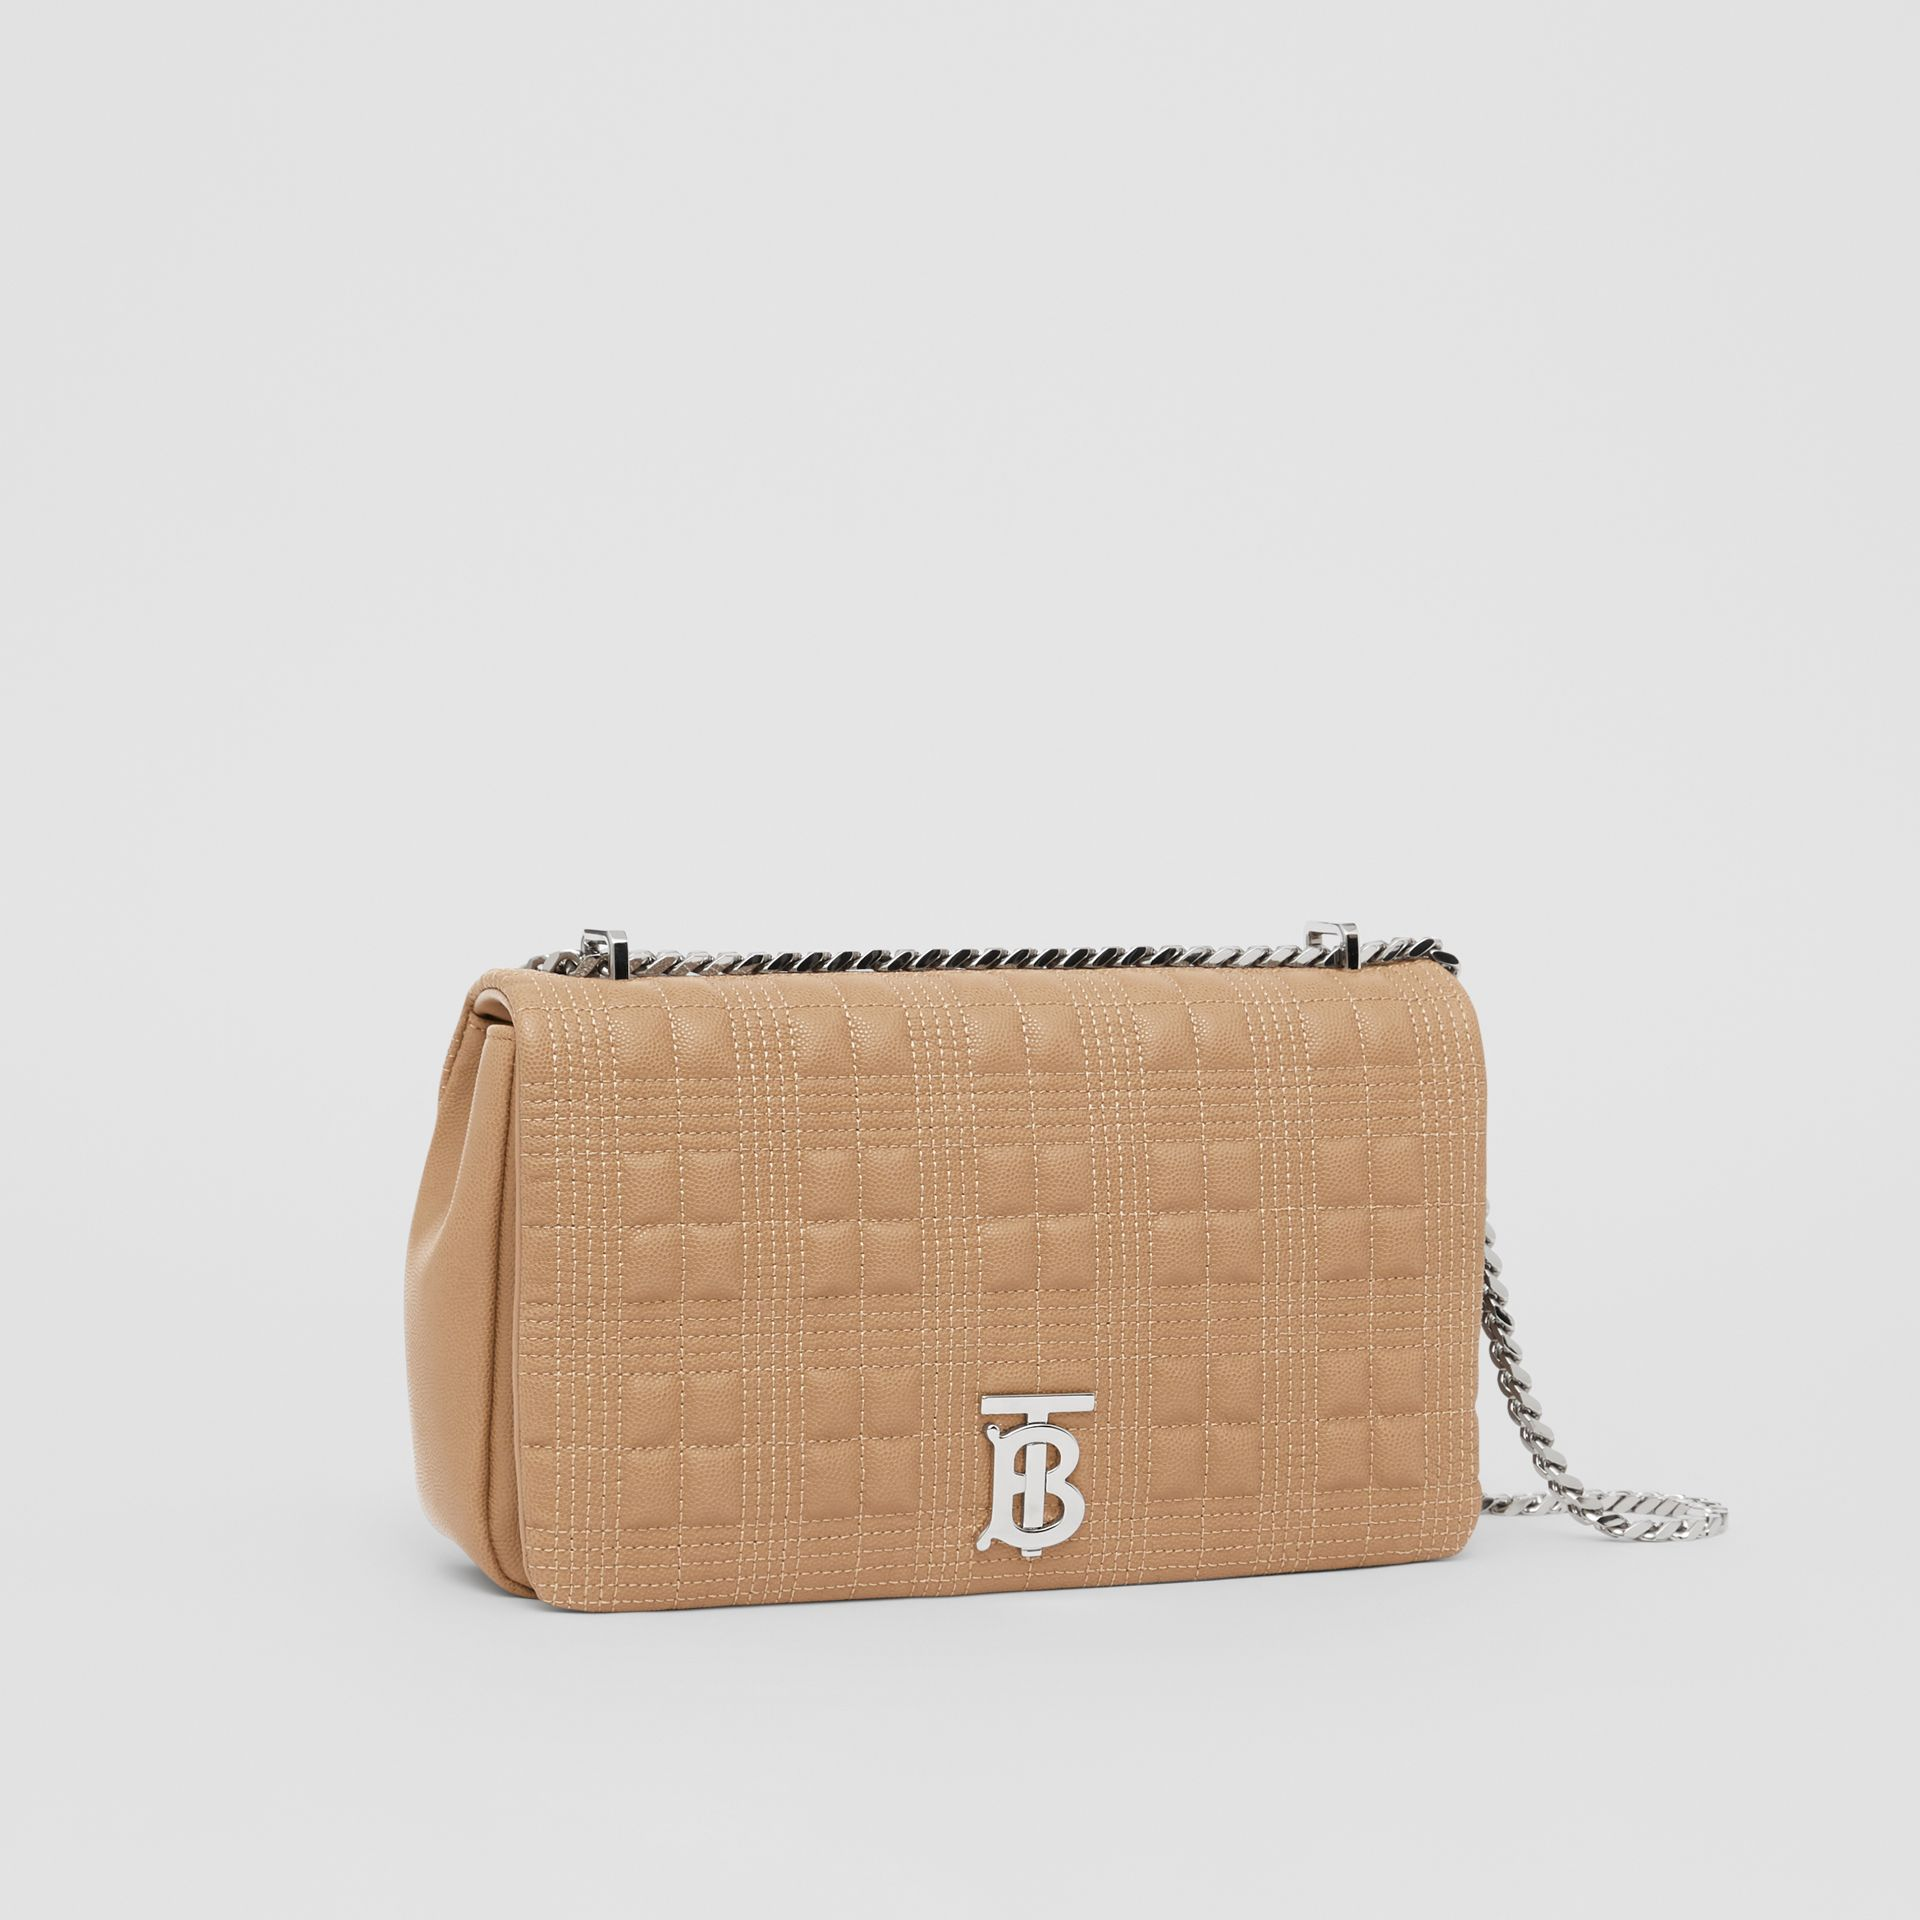 Medium Quilted Grainy Leather Lola Bag in Camel/palladium - Women | Burberry - gallery image 6